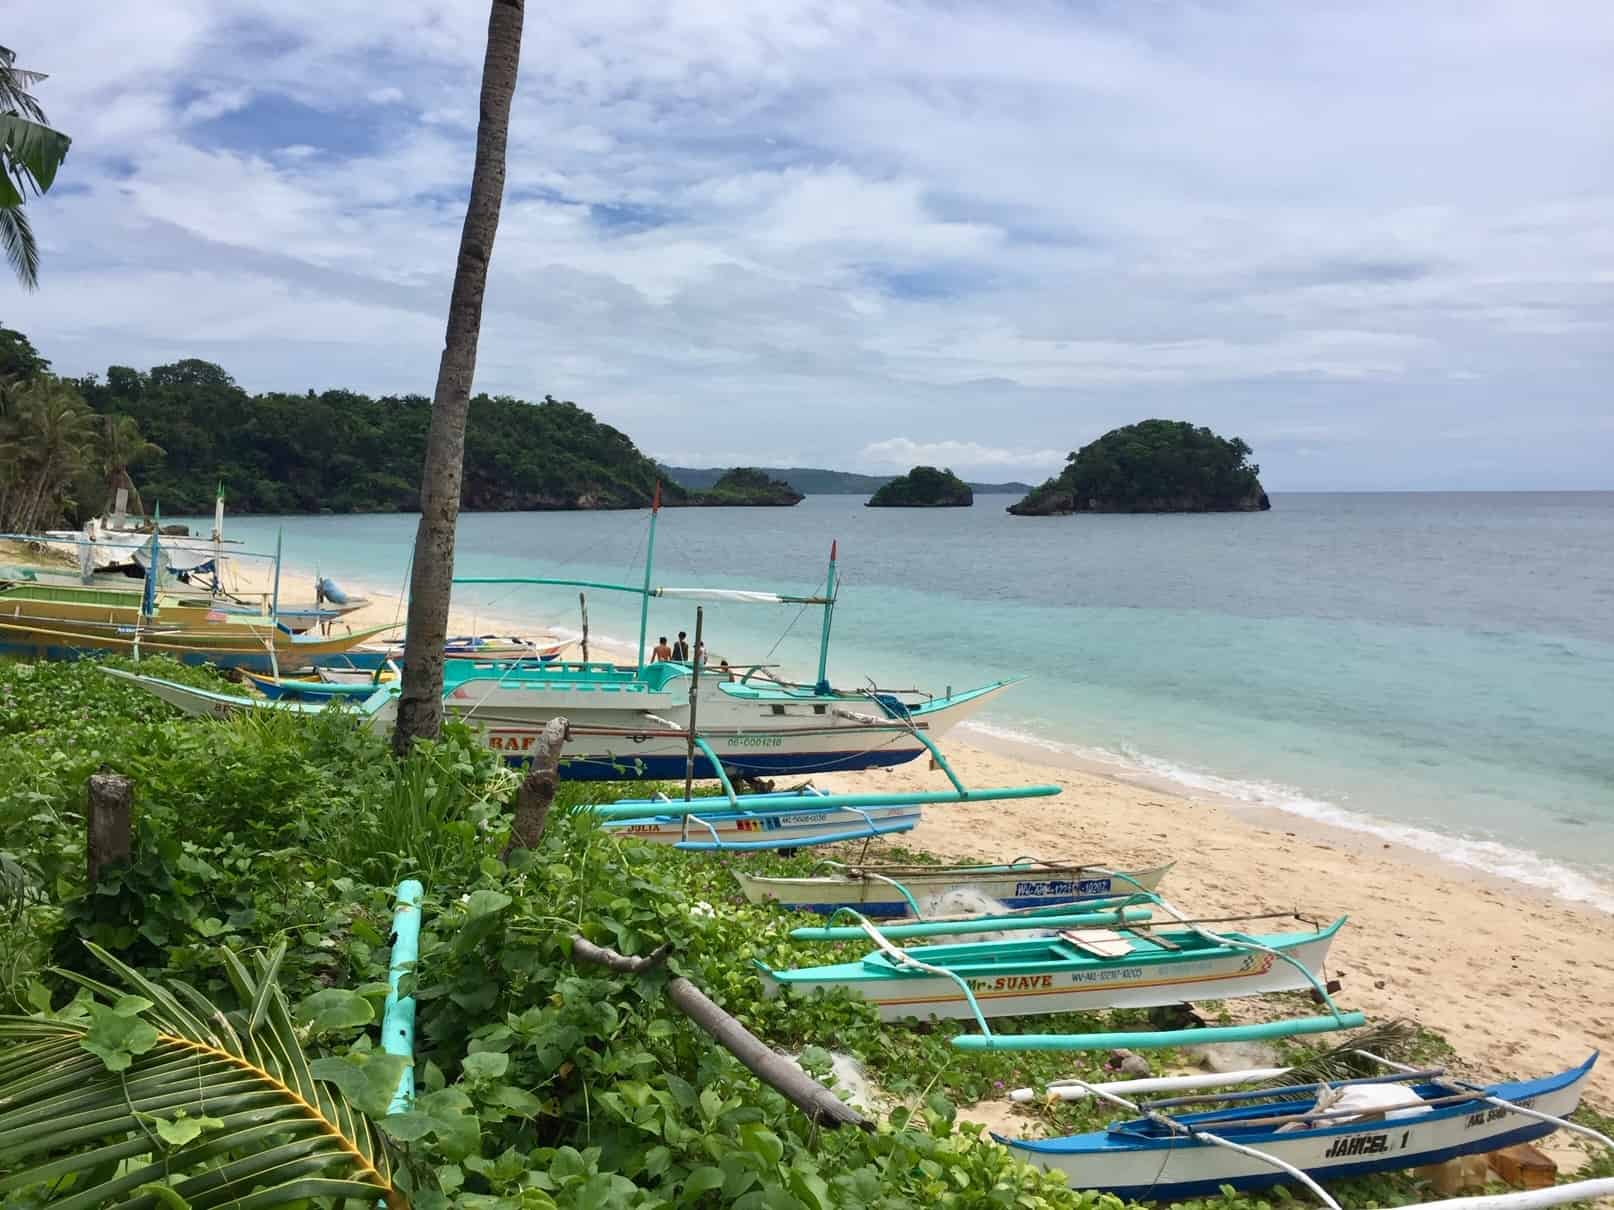 We explored new beaches like we did during the good old days of travel. This one is Ilig Iligan on Boracay Island in the Philippines.